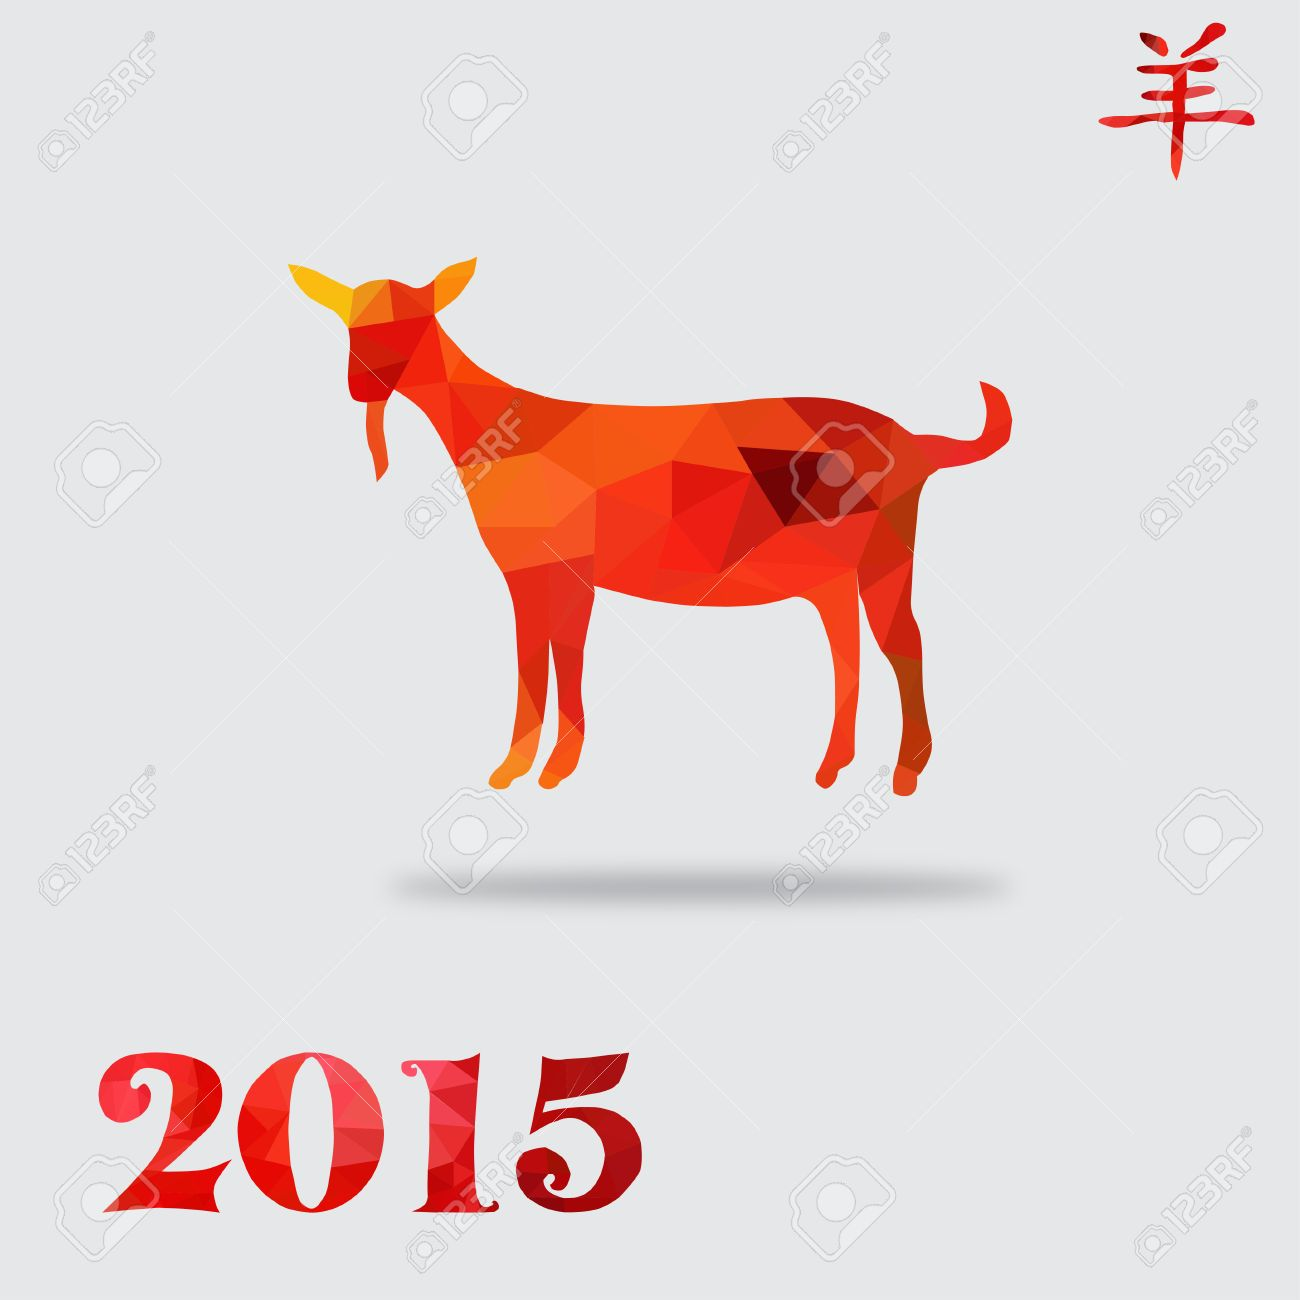 New Year 2015 Card With Goat Silhouette Made By Colorful Geometric